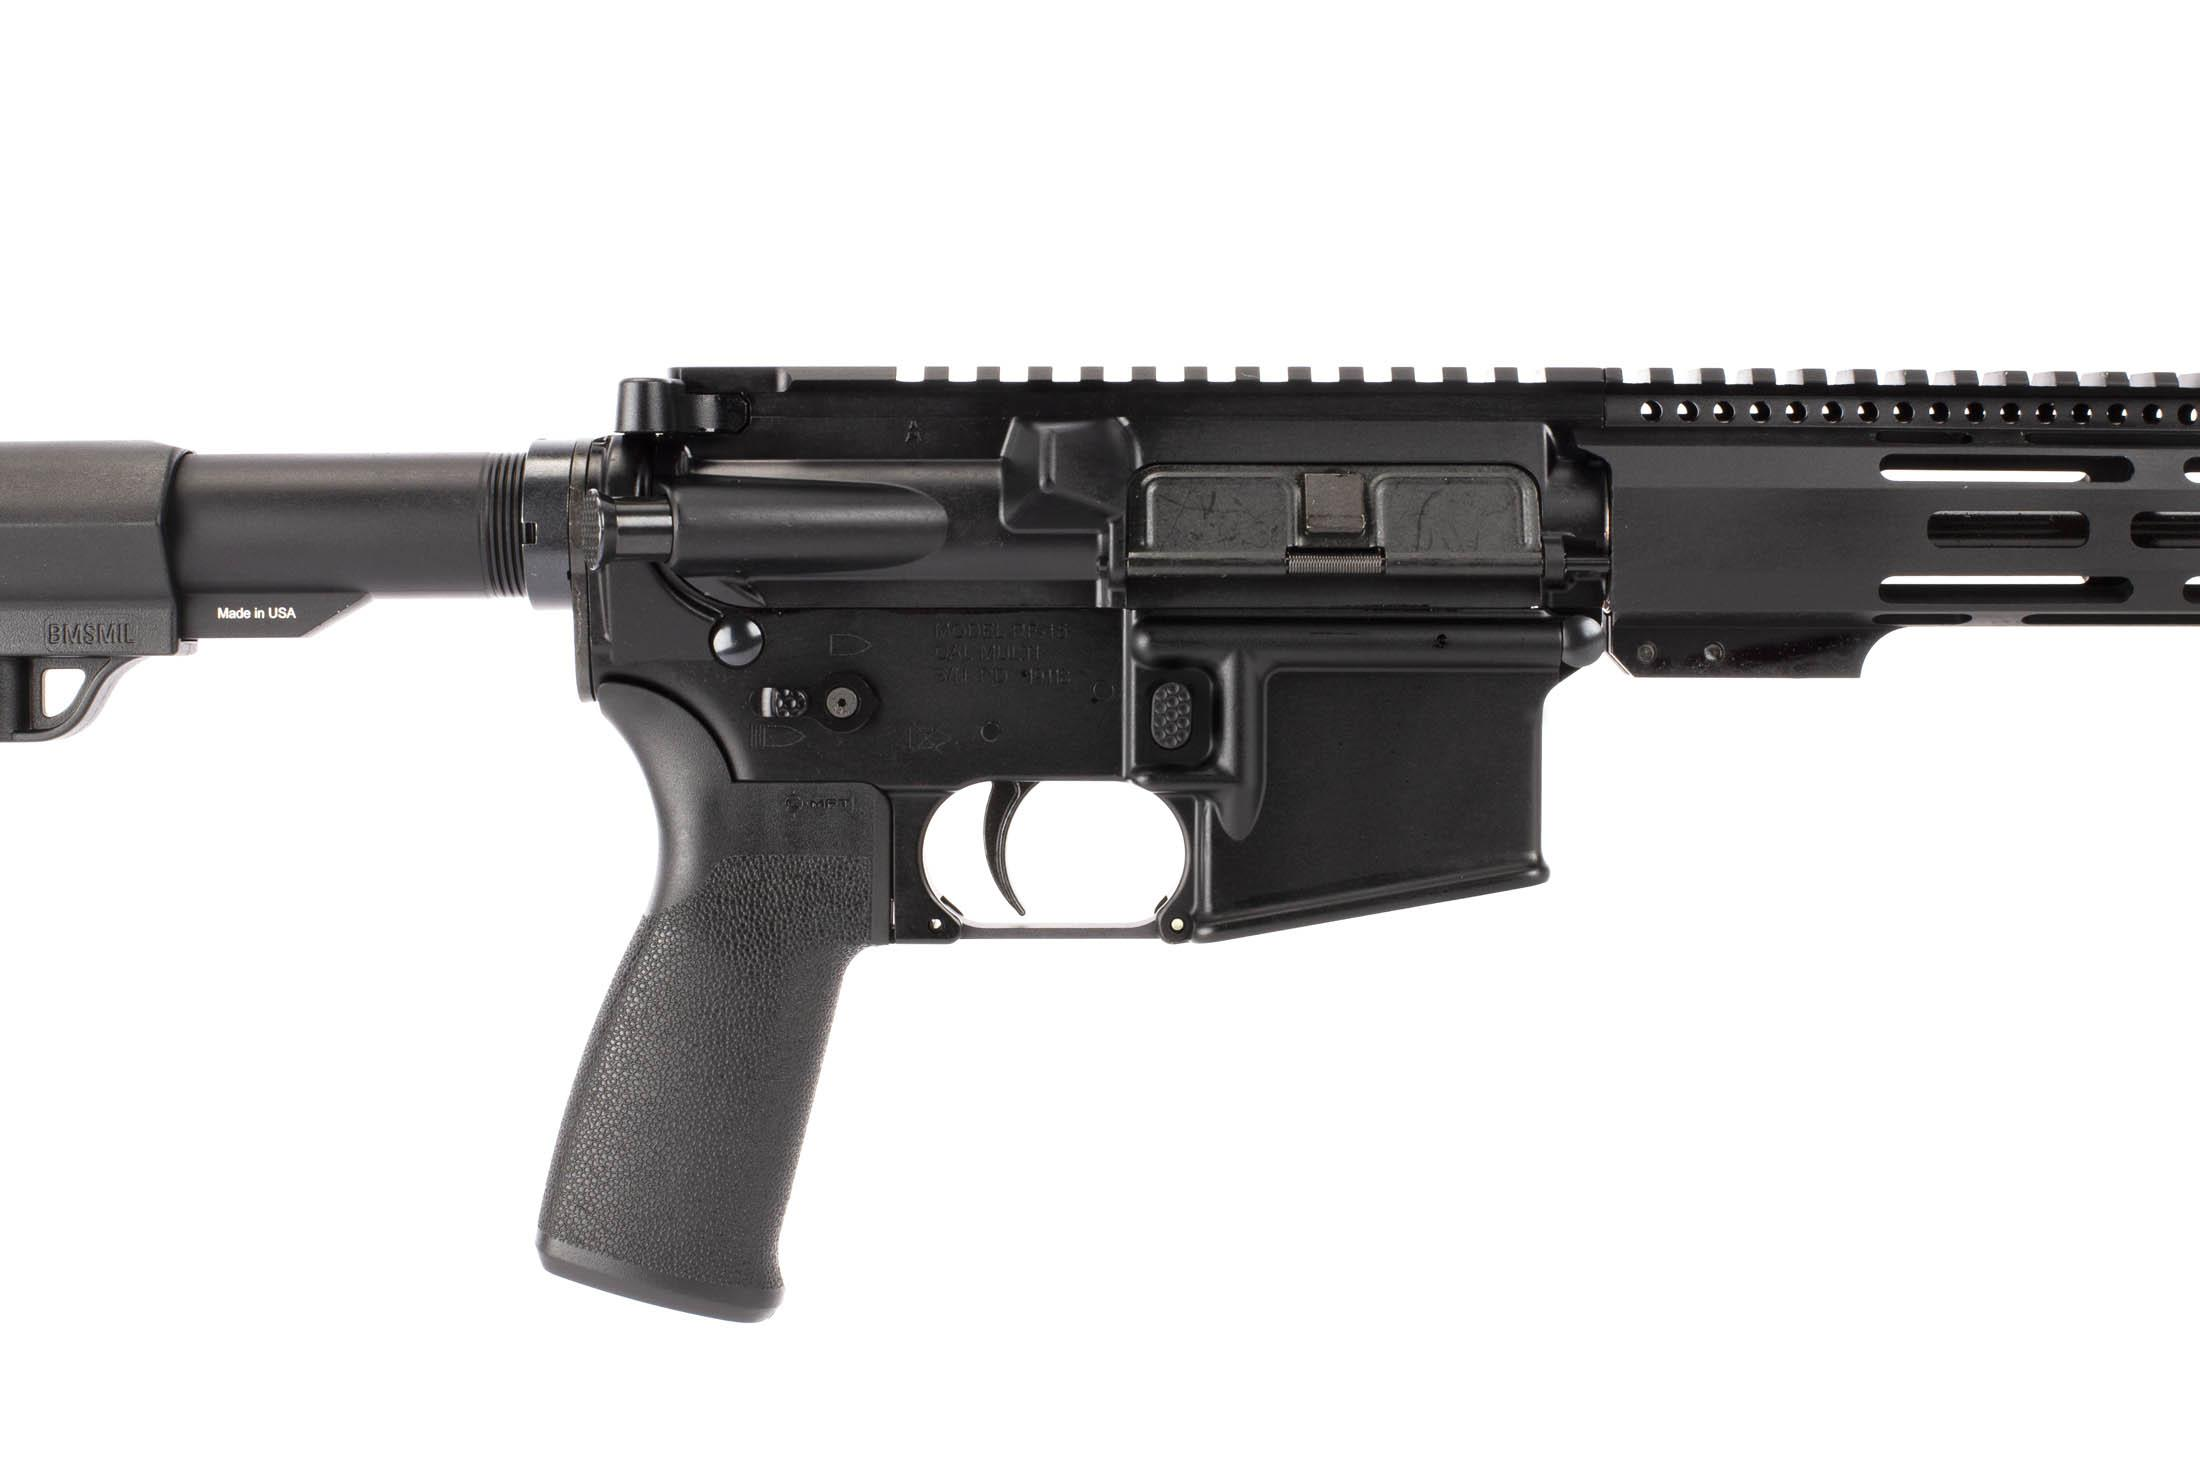 Radical Firearms 16in 5.56 NATO AR-15 with enhanced magazine release, MFT pistol grip, and ambidextrous safety selector.